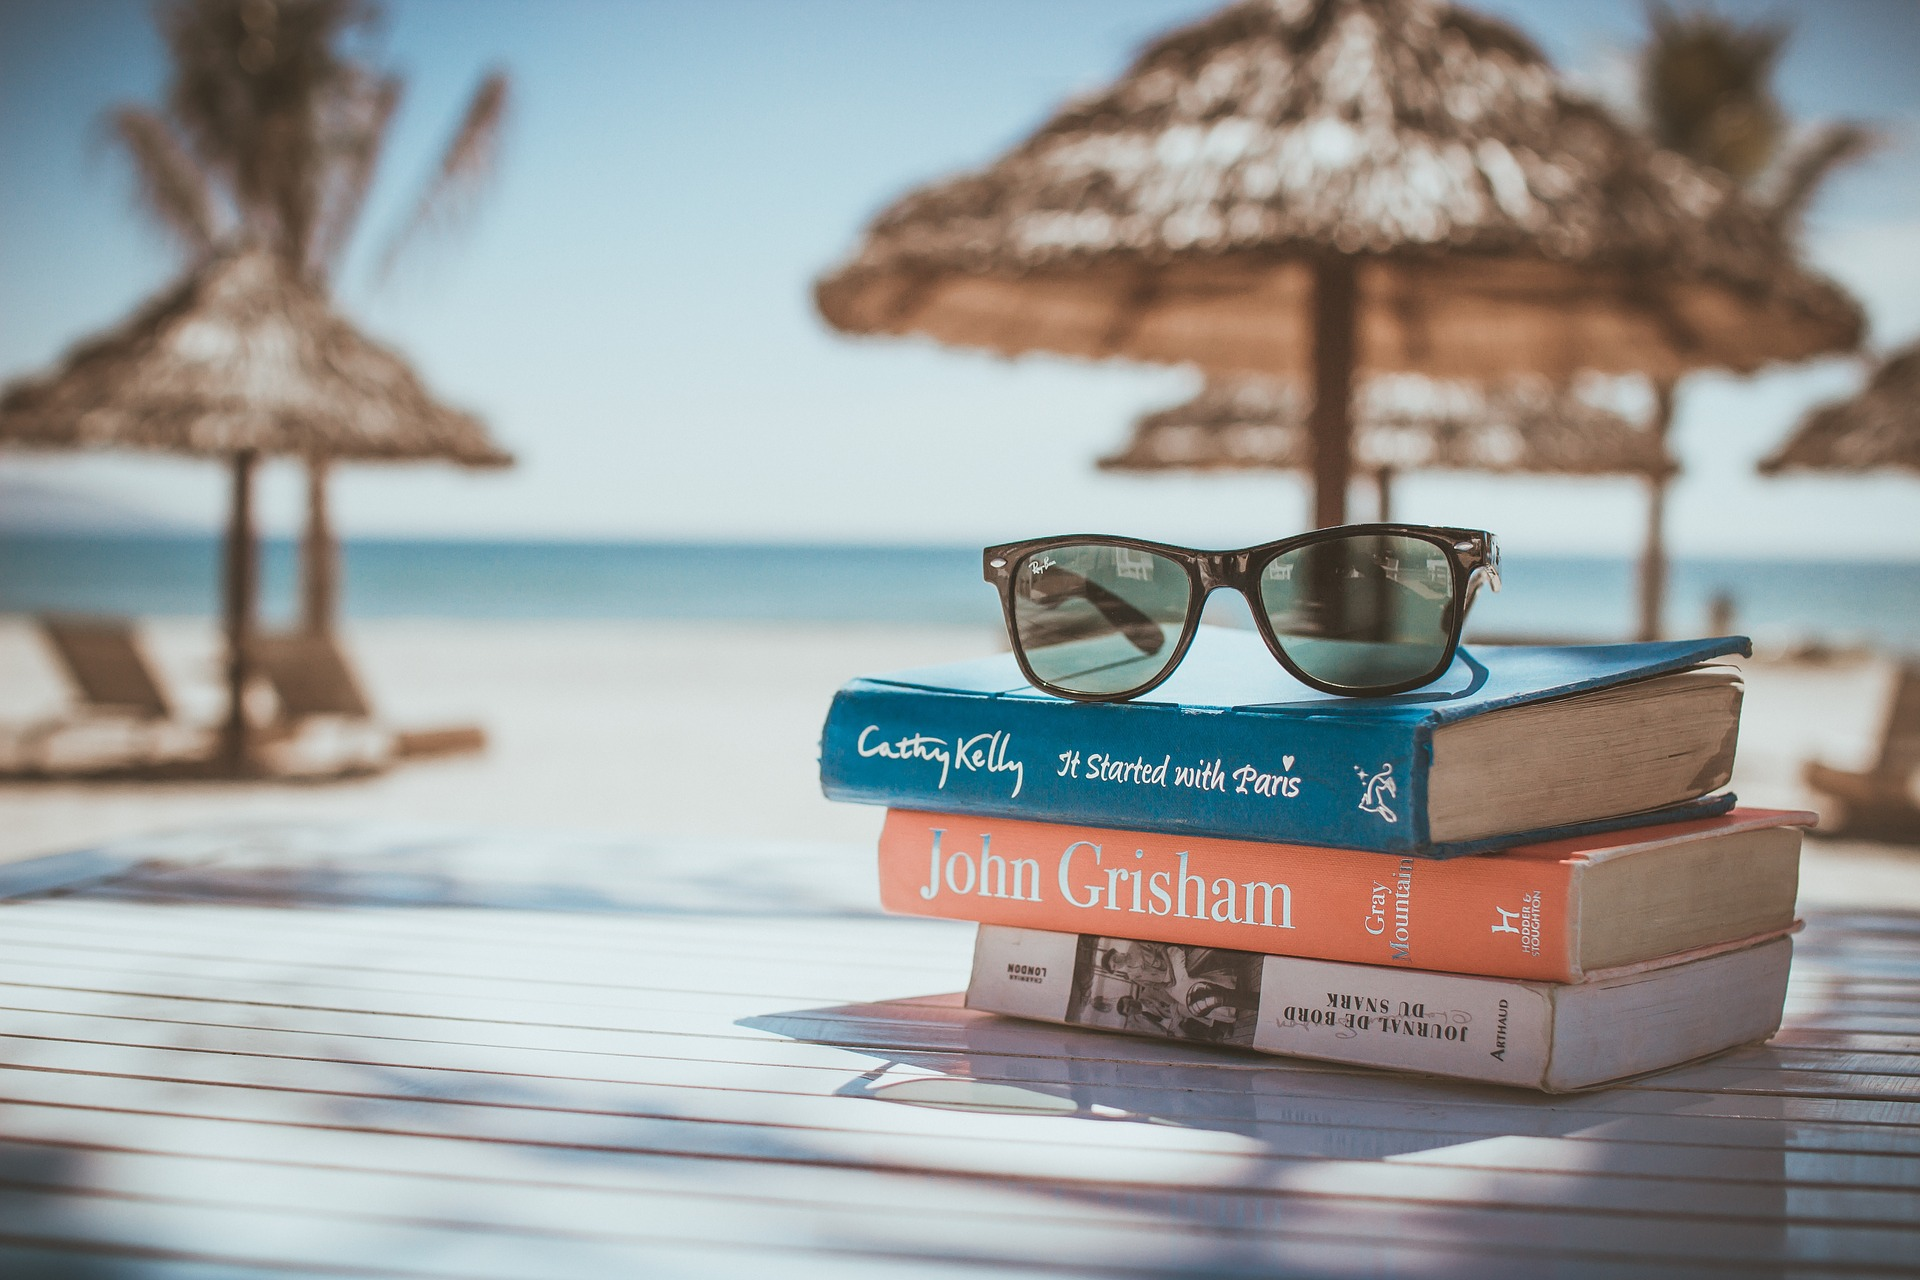 books-sunglasses-beach-spending plan in retirement